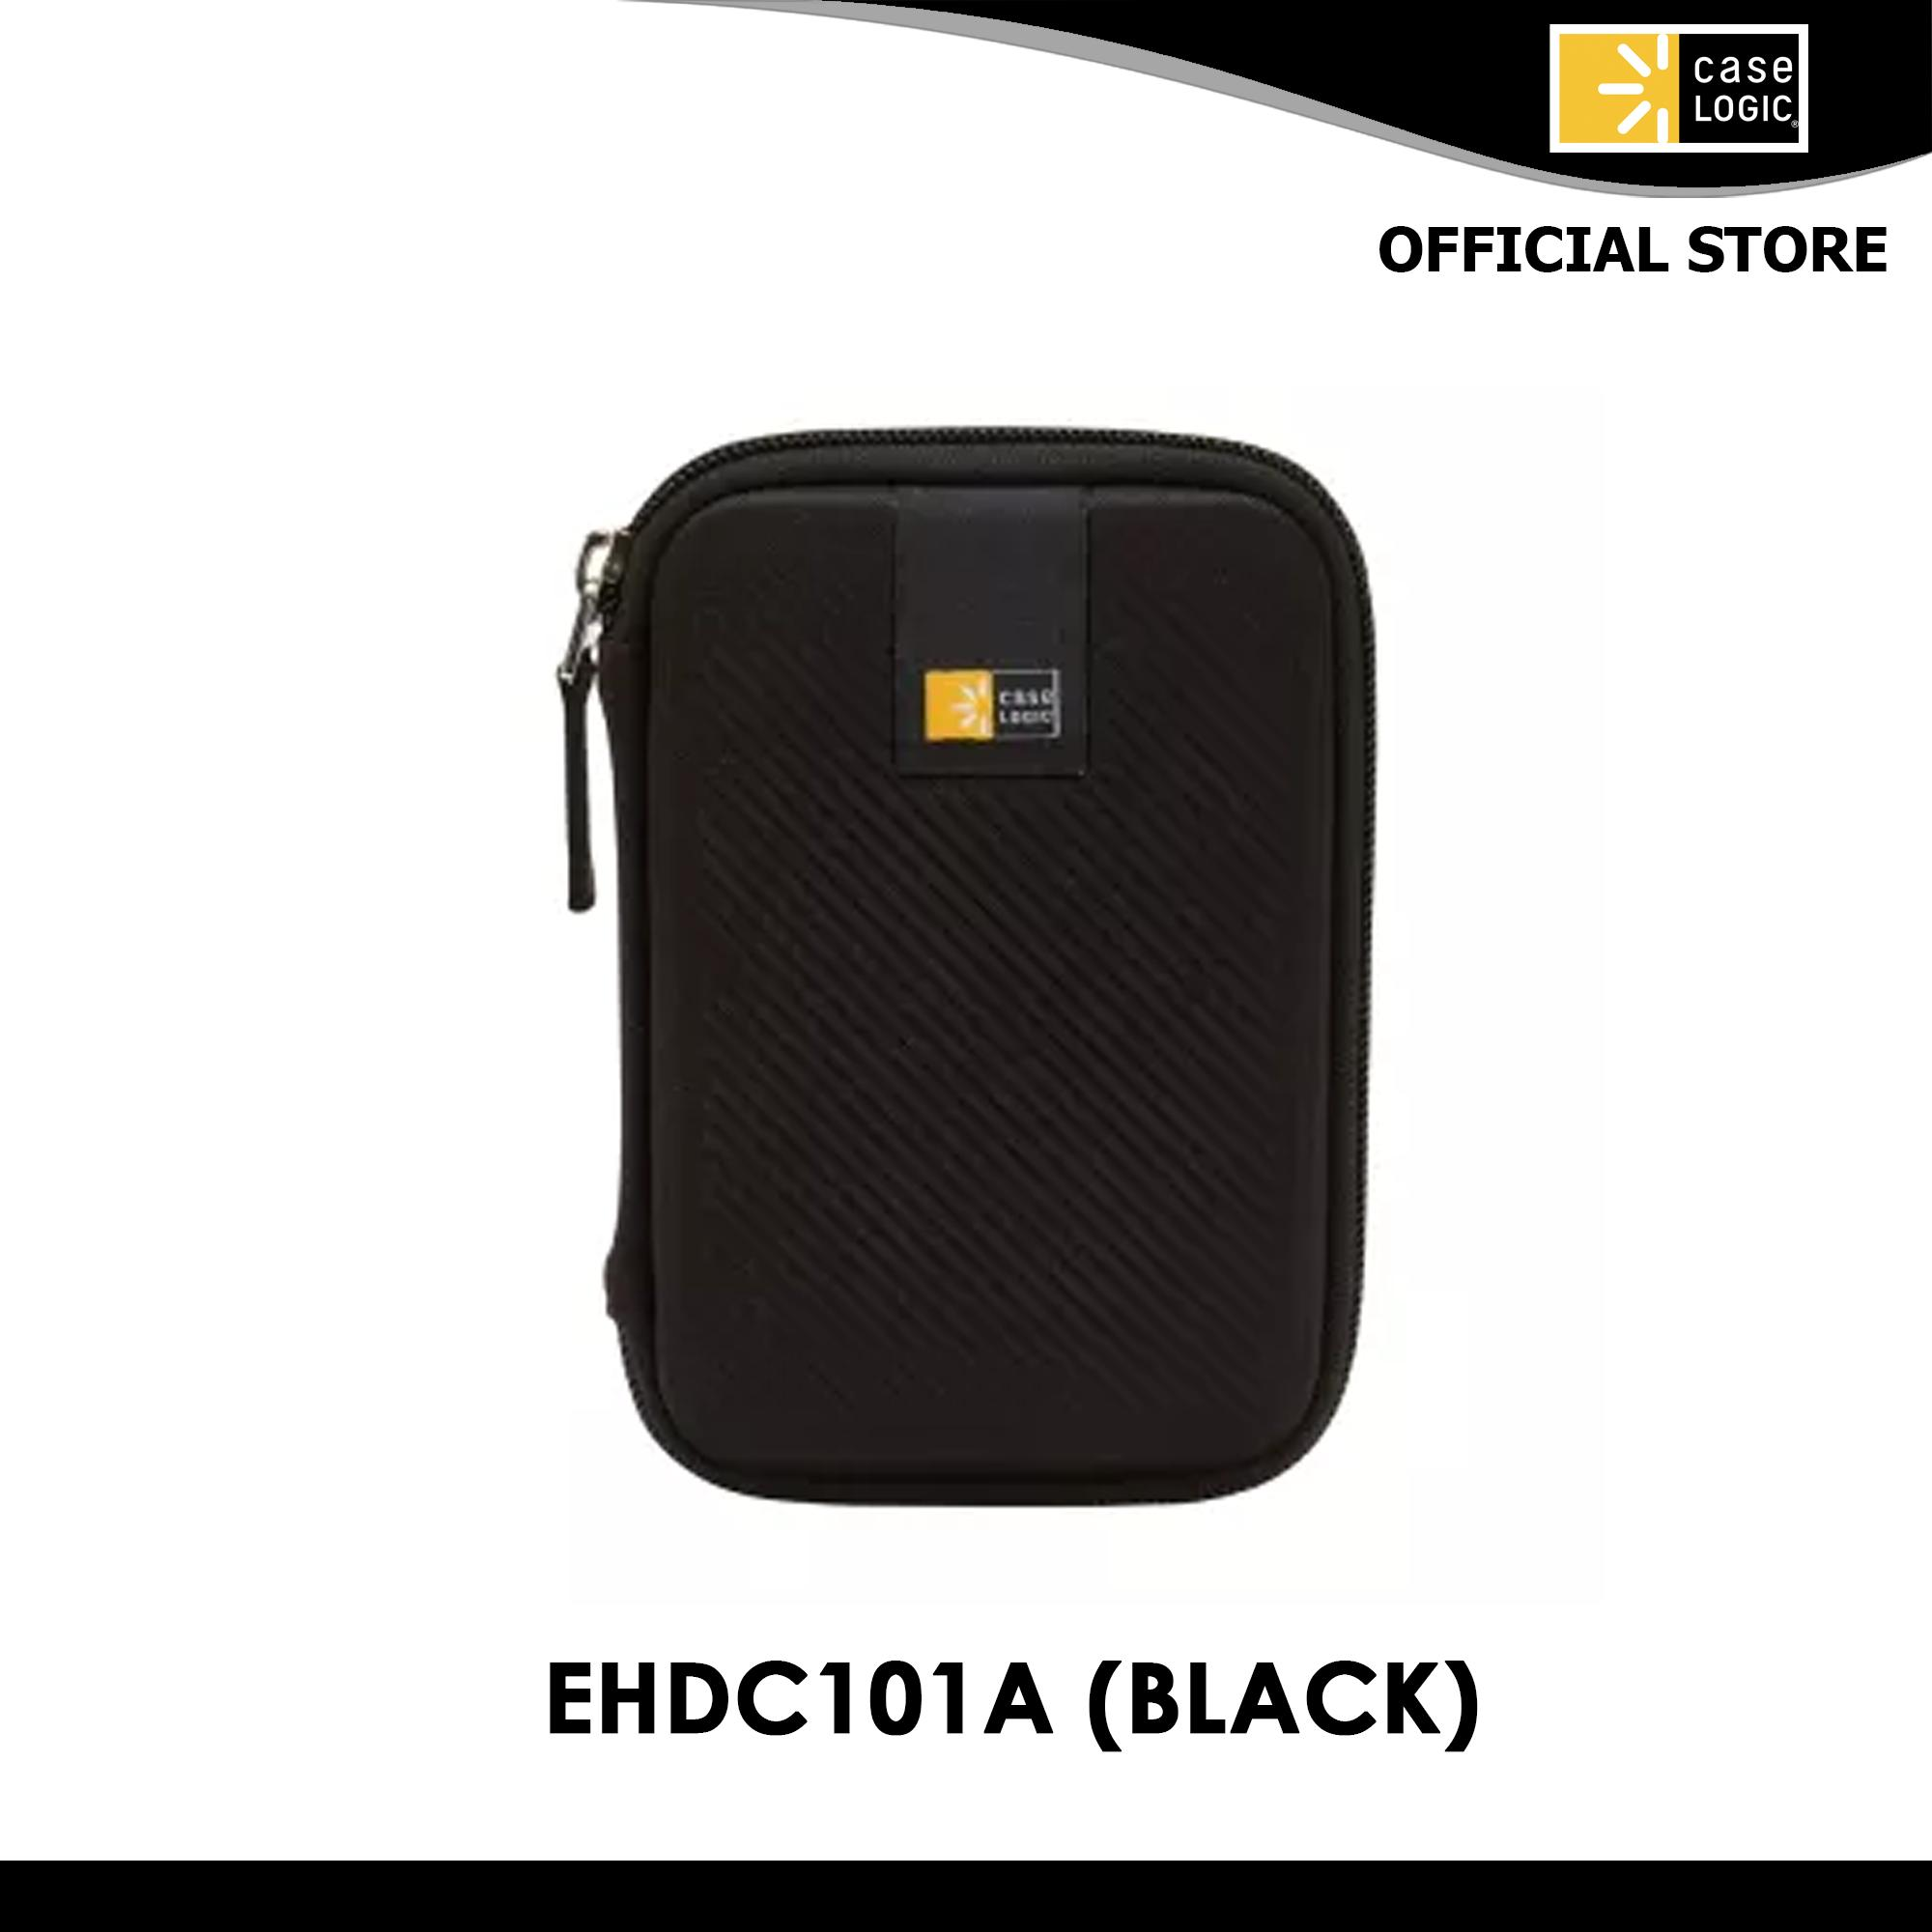 Product details of Case Logic EHDC-101A Portable Hard Drive (Black) | Lazada PH